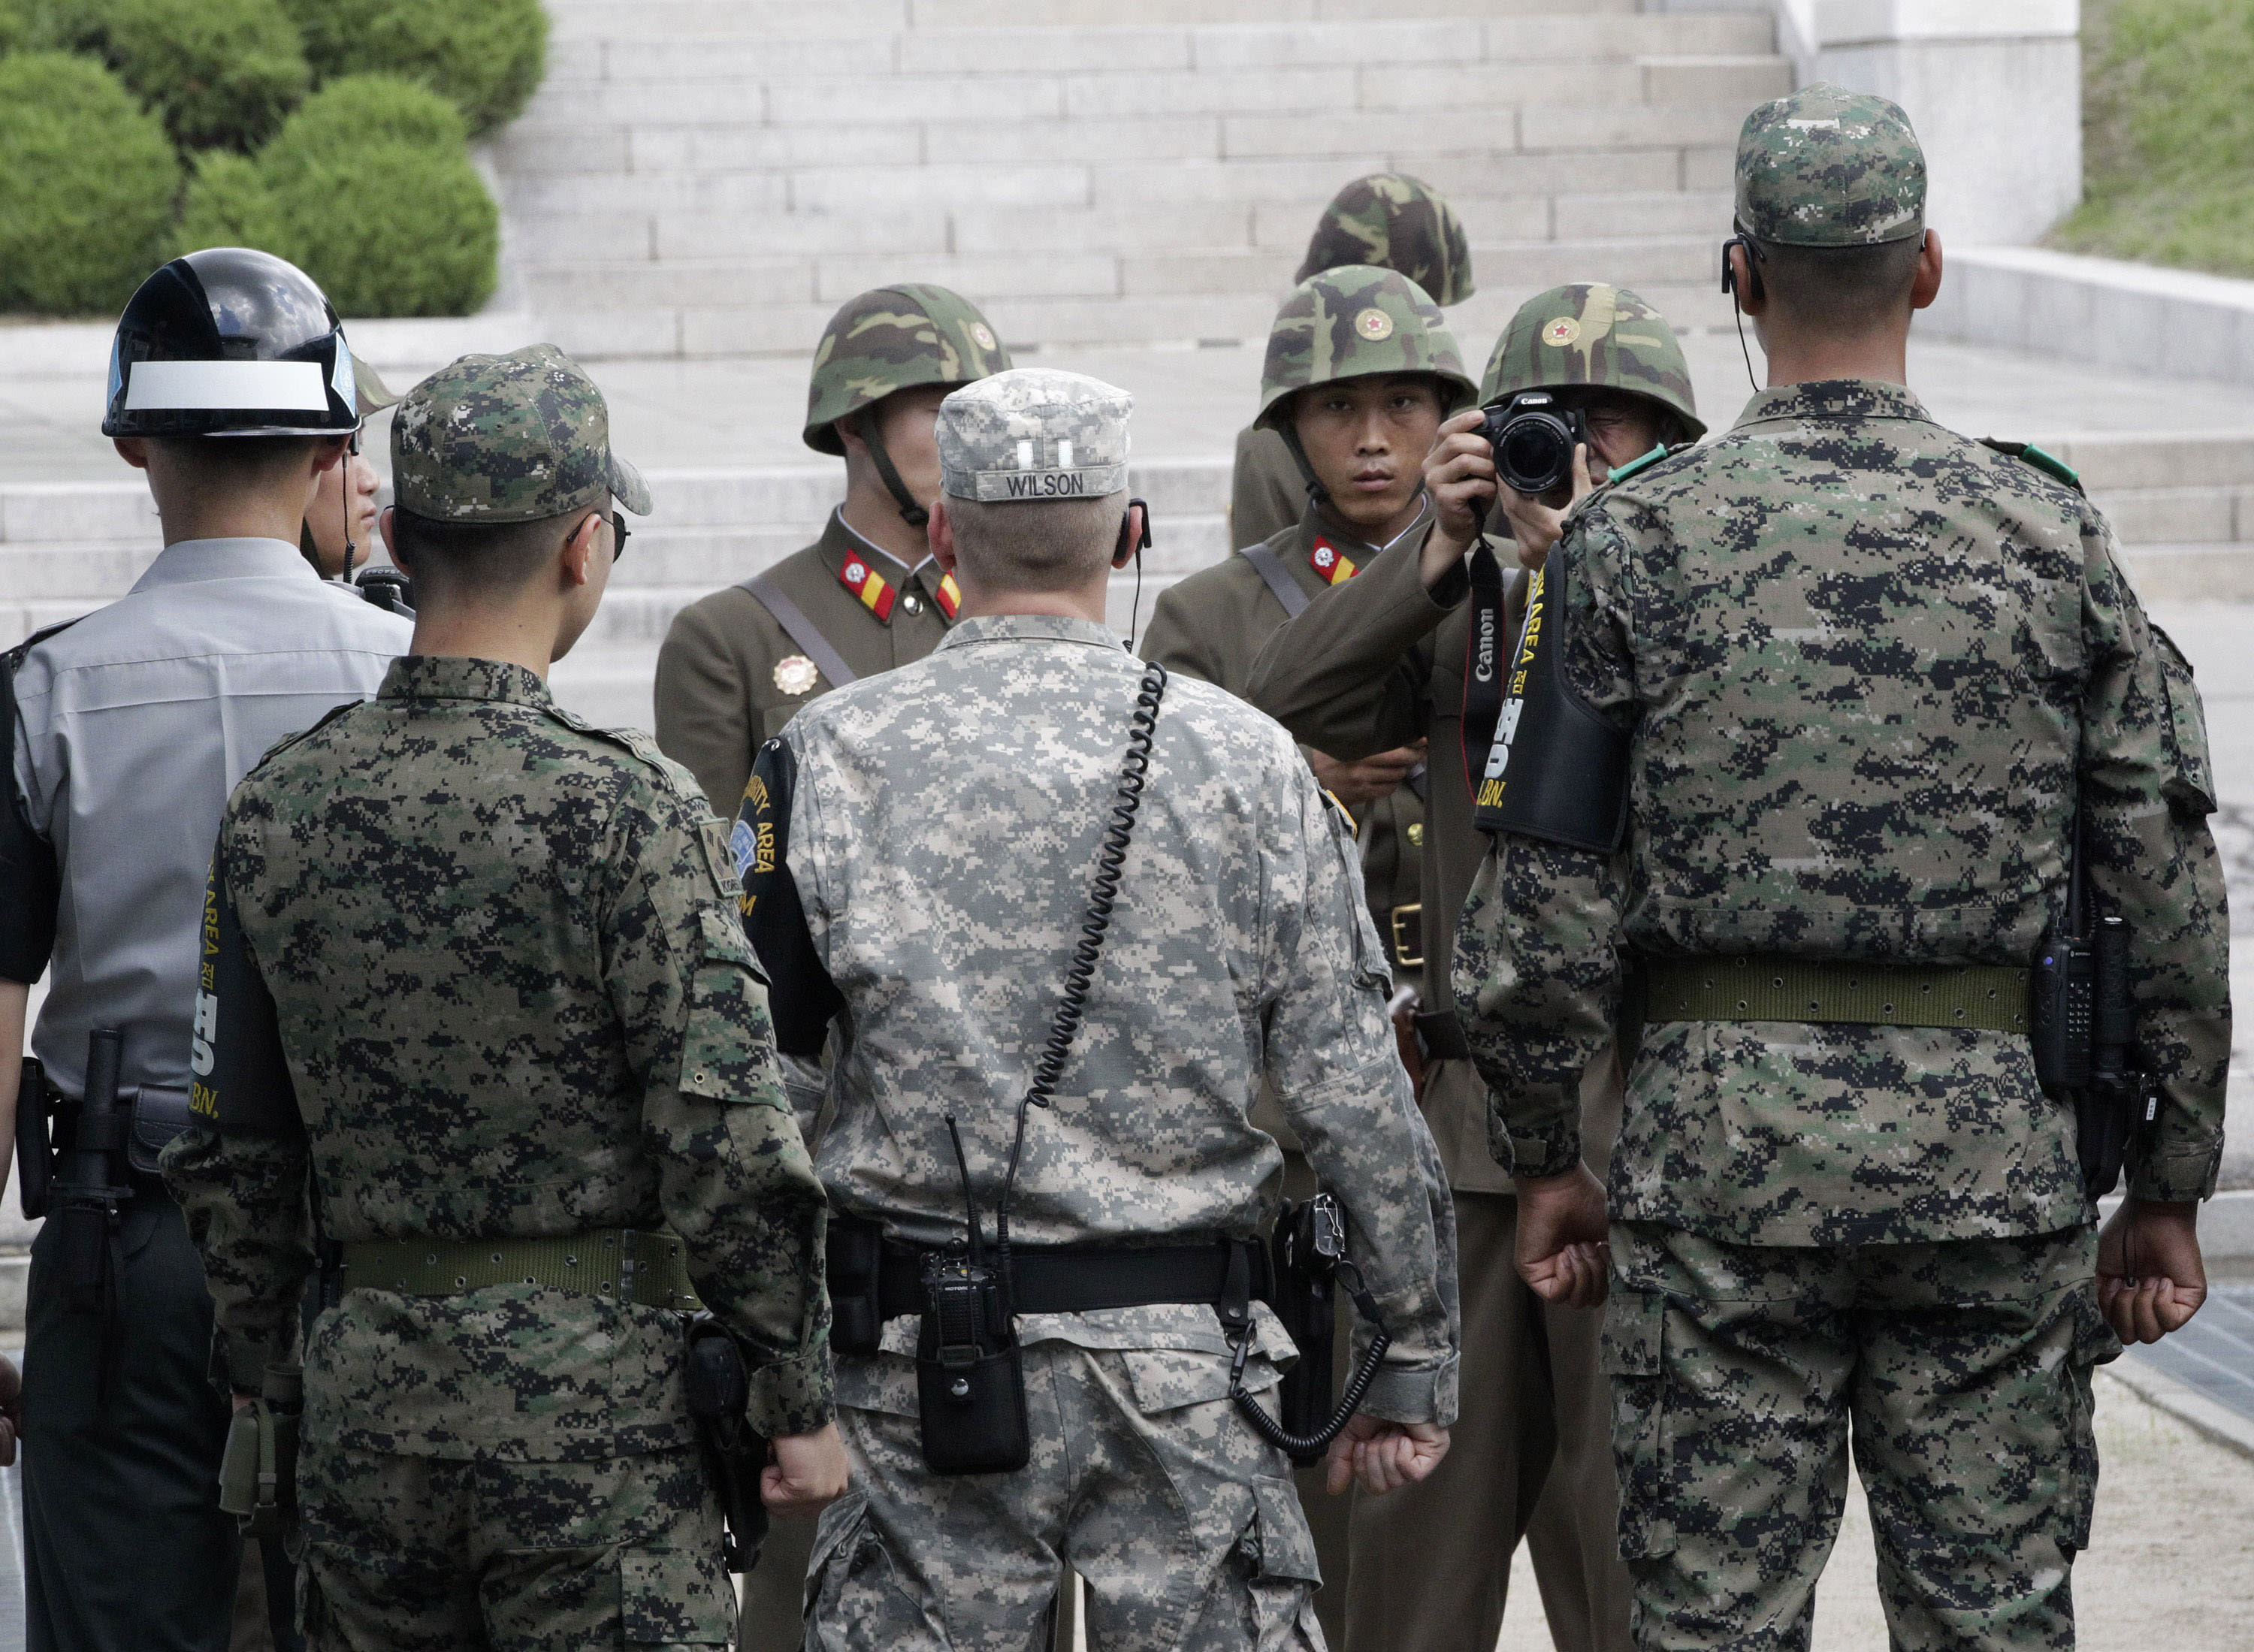 A North Korean solider takes pictures as a U.S., center, and South Korean army soldiers stand guard after a ceremony marking the 59th anniversary of the signing of the armistice agreement that ended the Korean War on July 27, 1953, at the border villages of Panmunjom, South Korea, Friday, July 27, 2012. (AP Photo/Ahn Young-joon. Pool)